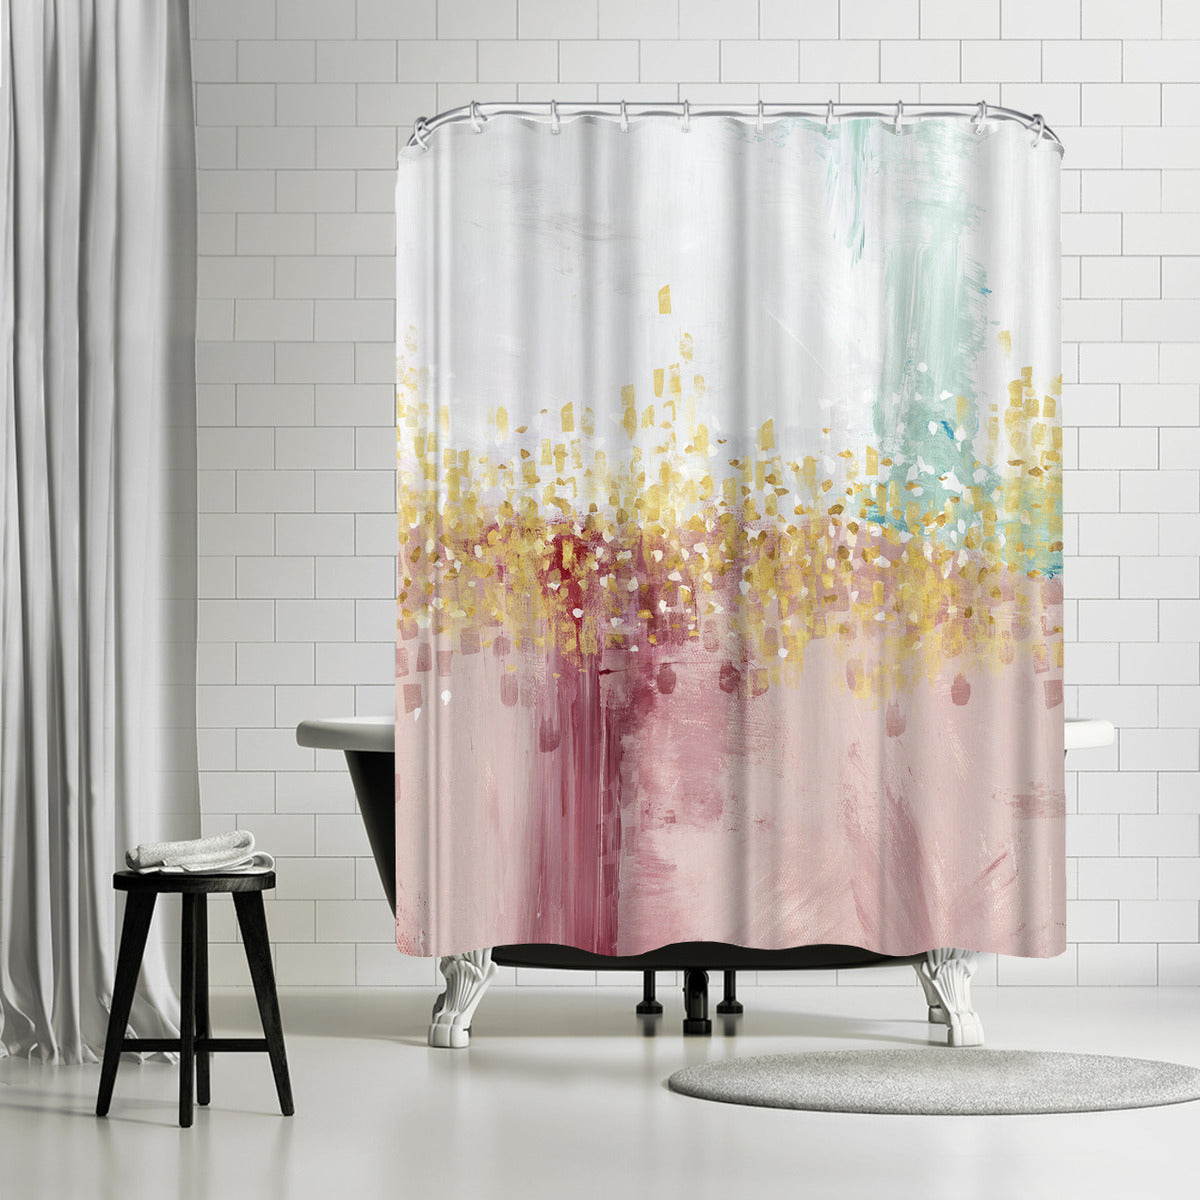 Mustn't Hurry I by PI Creative Art Shower Curtain -  - Americanflat